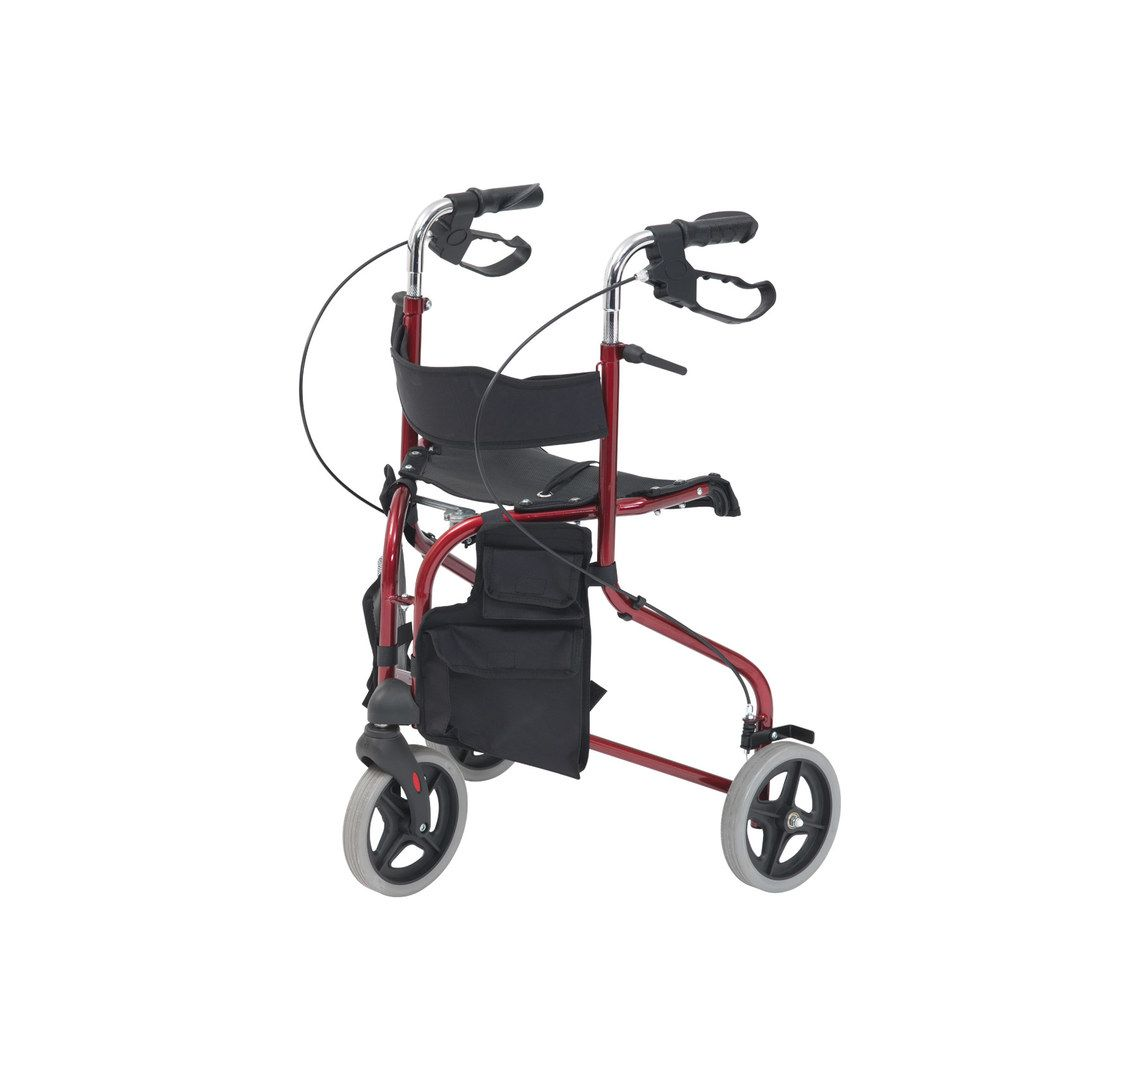 A folding tri walker with seat